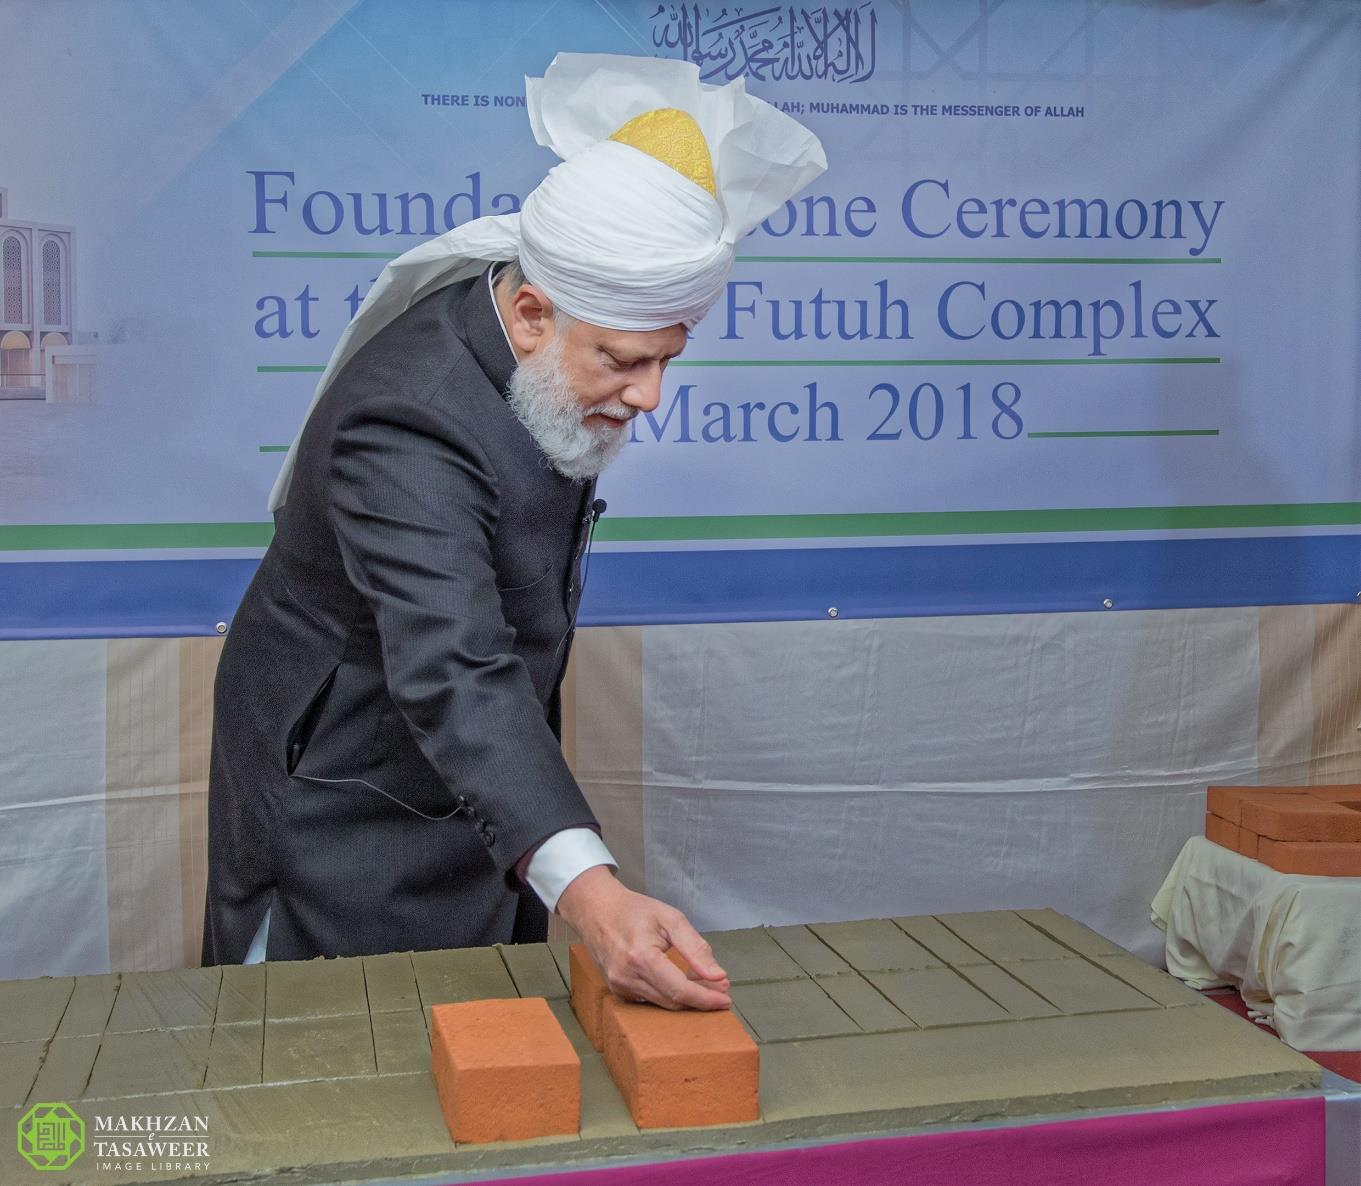 Head of Ahmadiyya Muslim Community lays Foundation Stone for new Administrative Block at Baitul Futuh Mosque